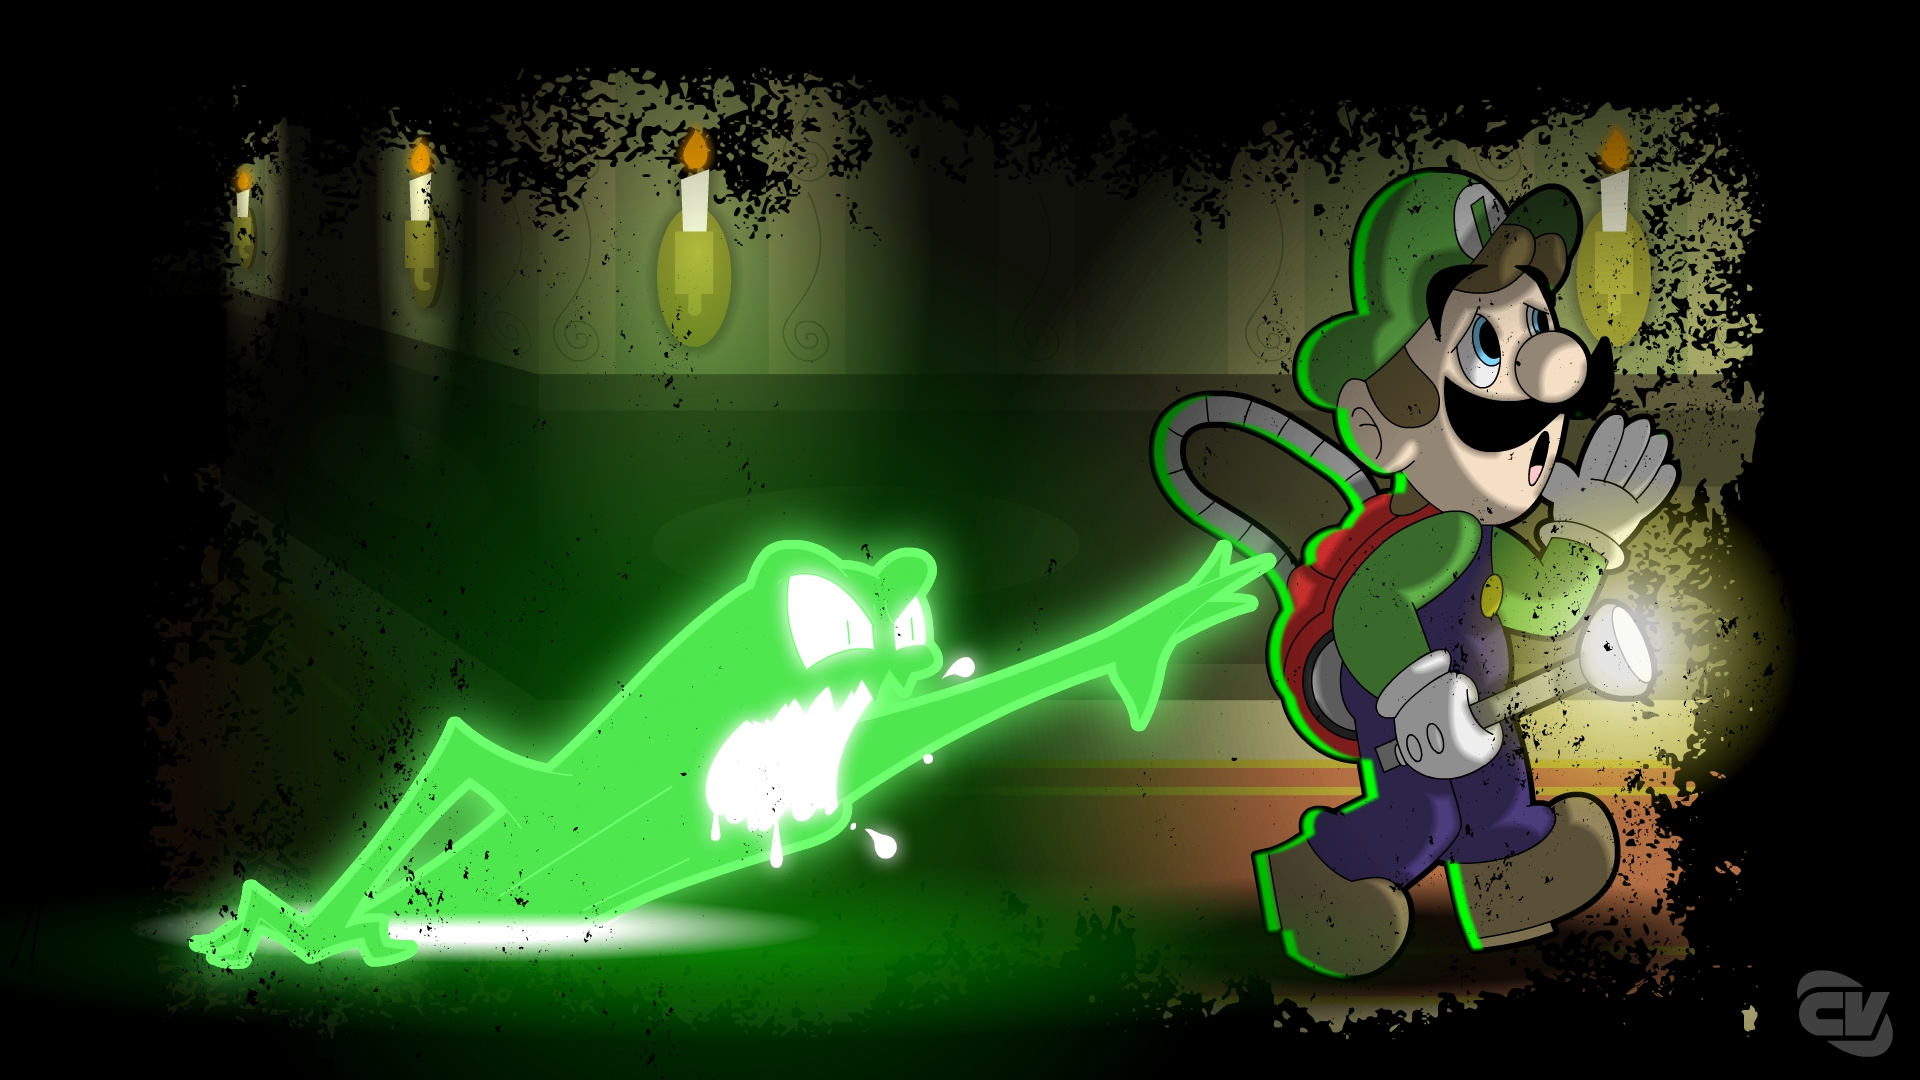 Luigis Mansion Wallpaper By Chris Vassilico On Newgrounds